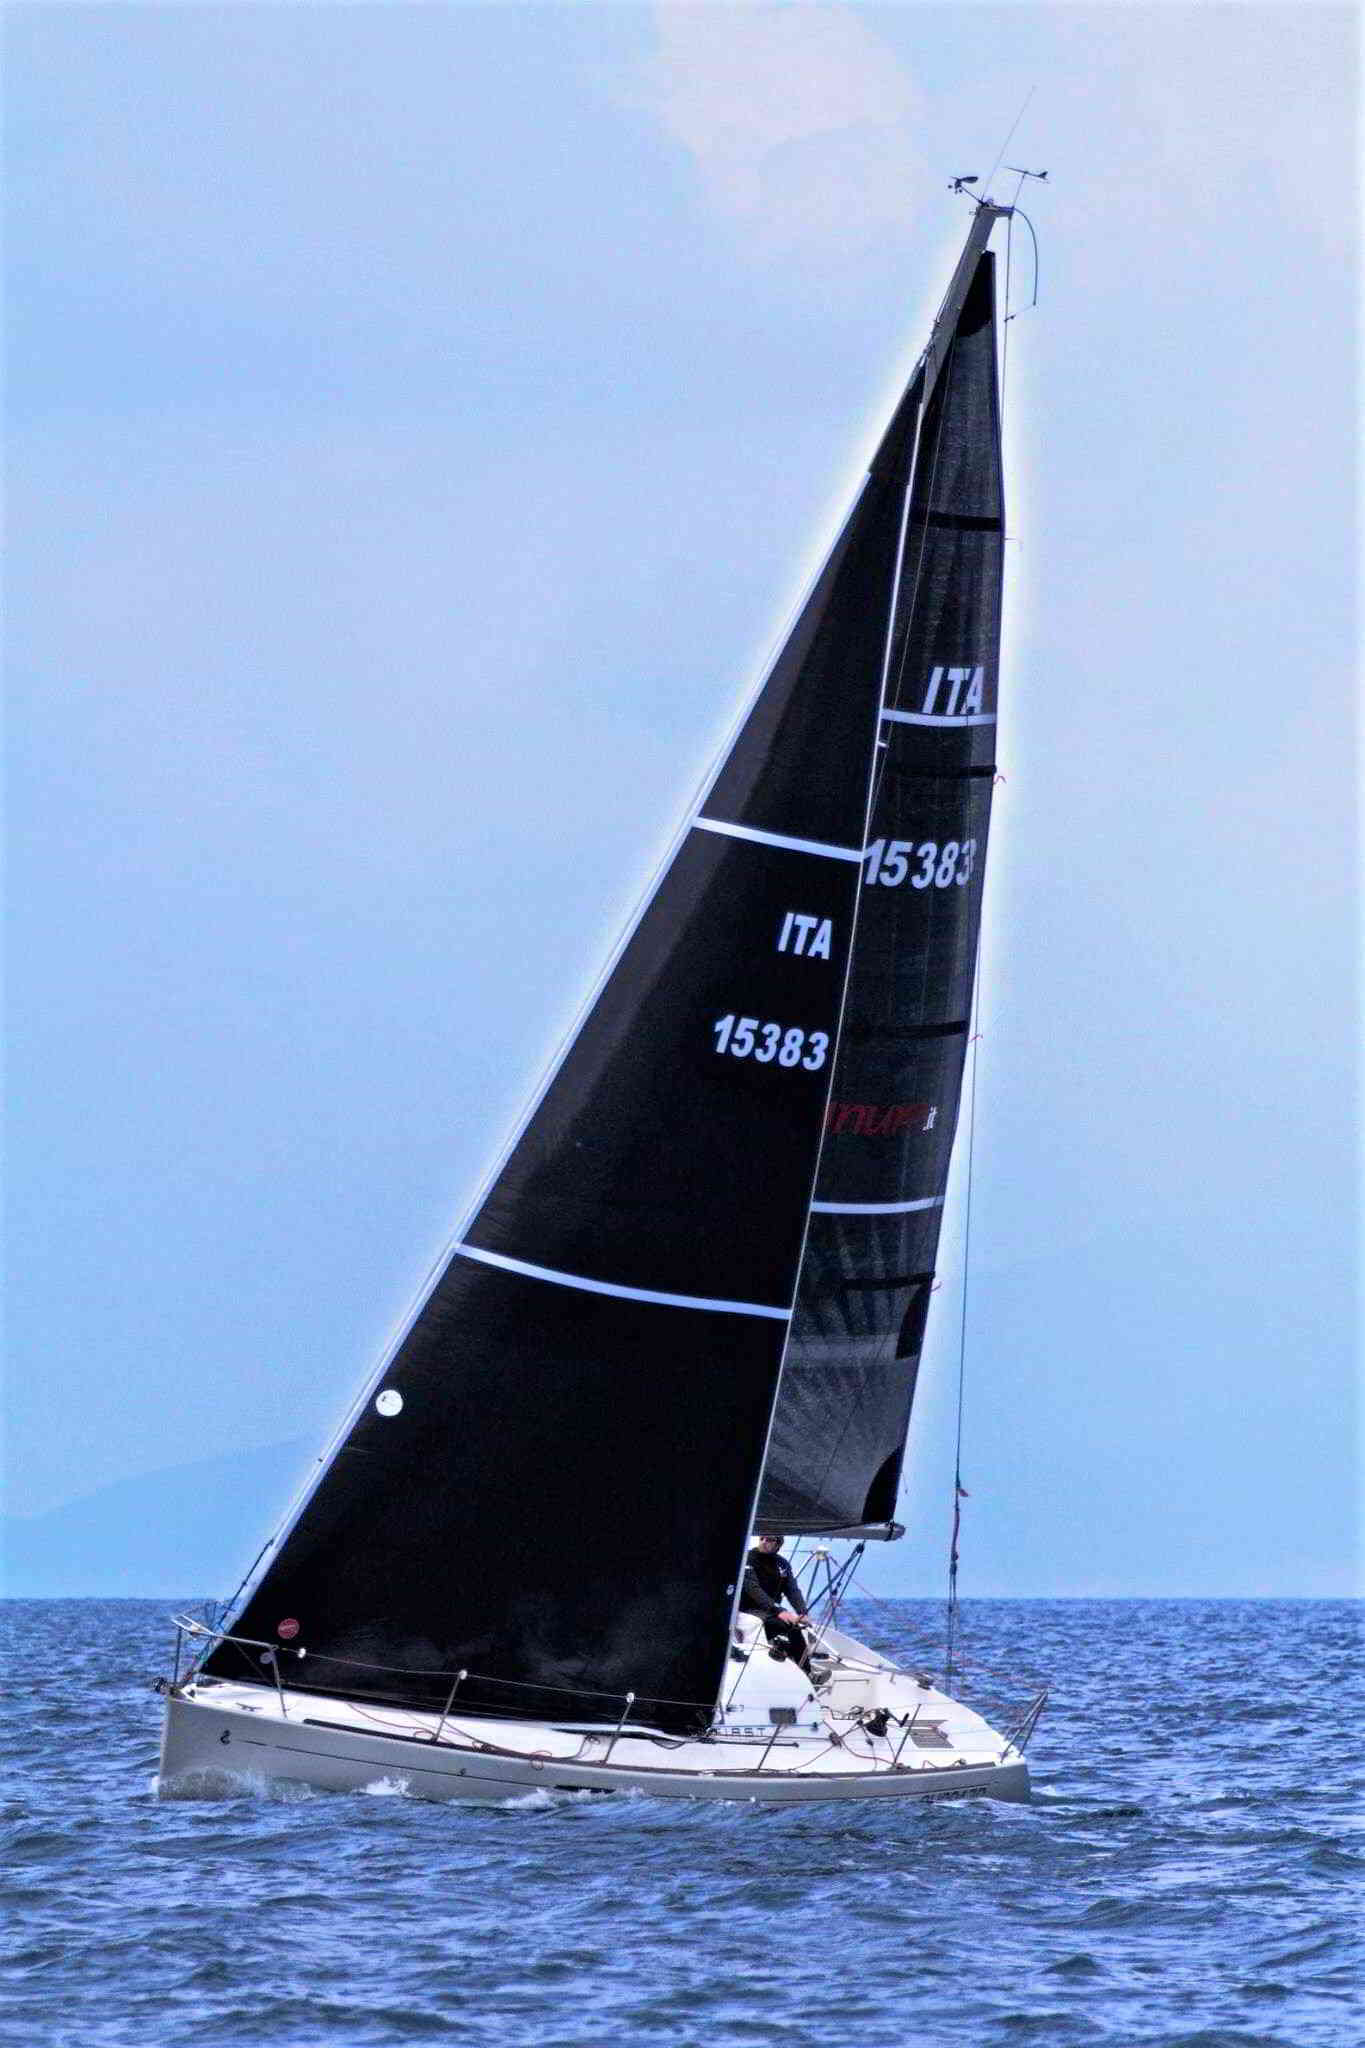 Foto del First 31.7 in regata